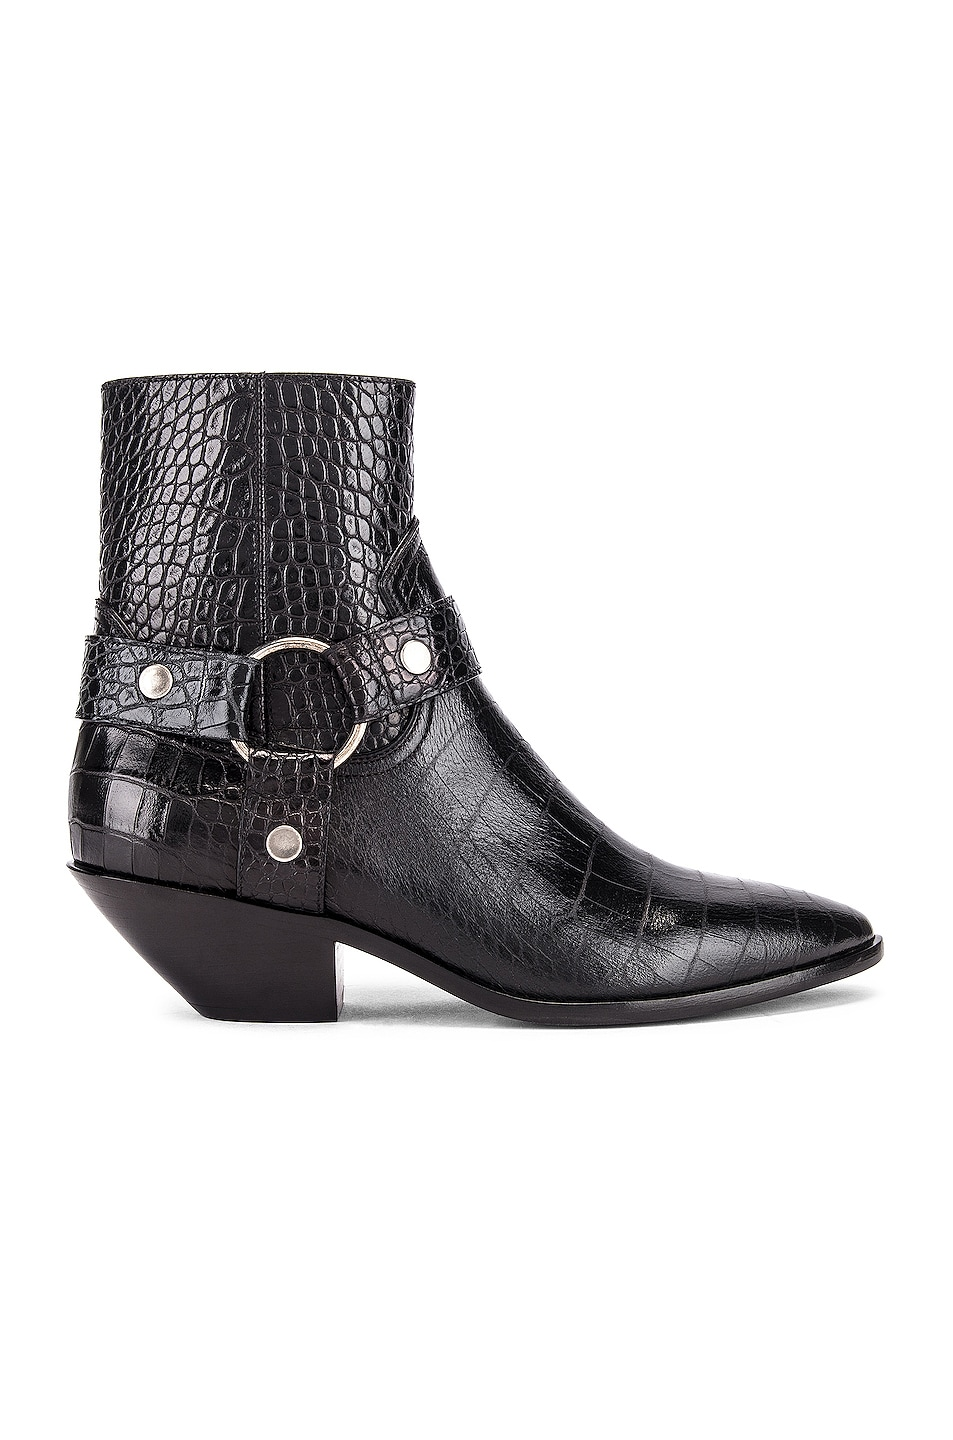 Image 1 of Saint Laurent West Strap Zip Ankle Boots in Black